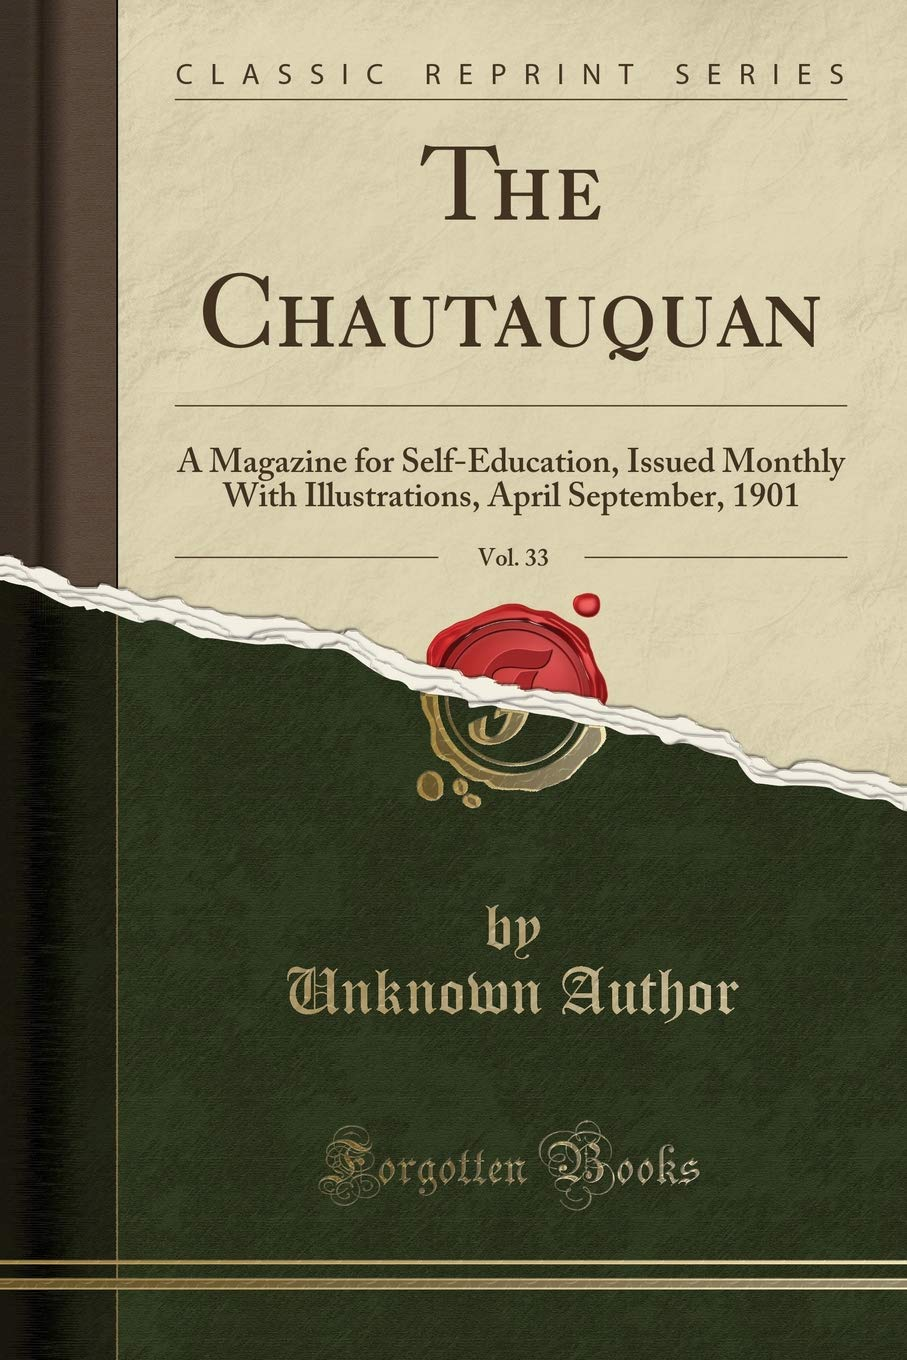 Download The Chautauquan, Vol. 33: A Magazine for Self-Education, Issued Monthly With Illustrations, April September, 1901 (Classic Reprint) ebook